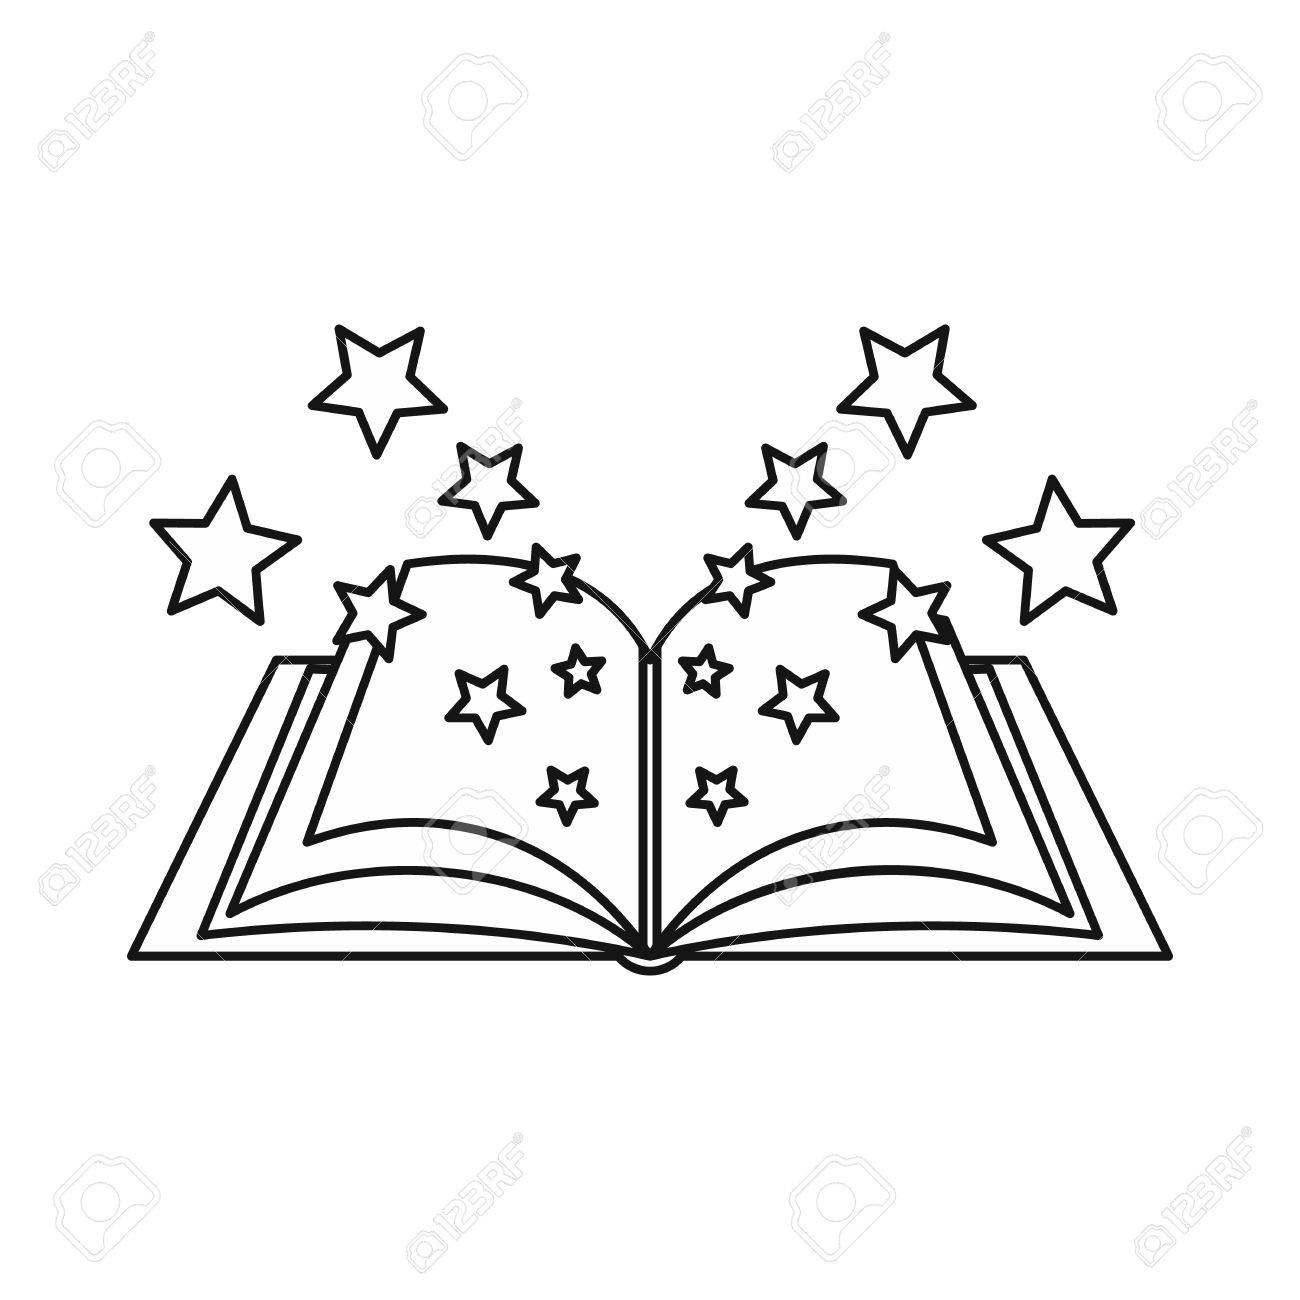 Magic book icon in outline style isolated on white background.